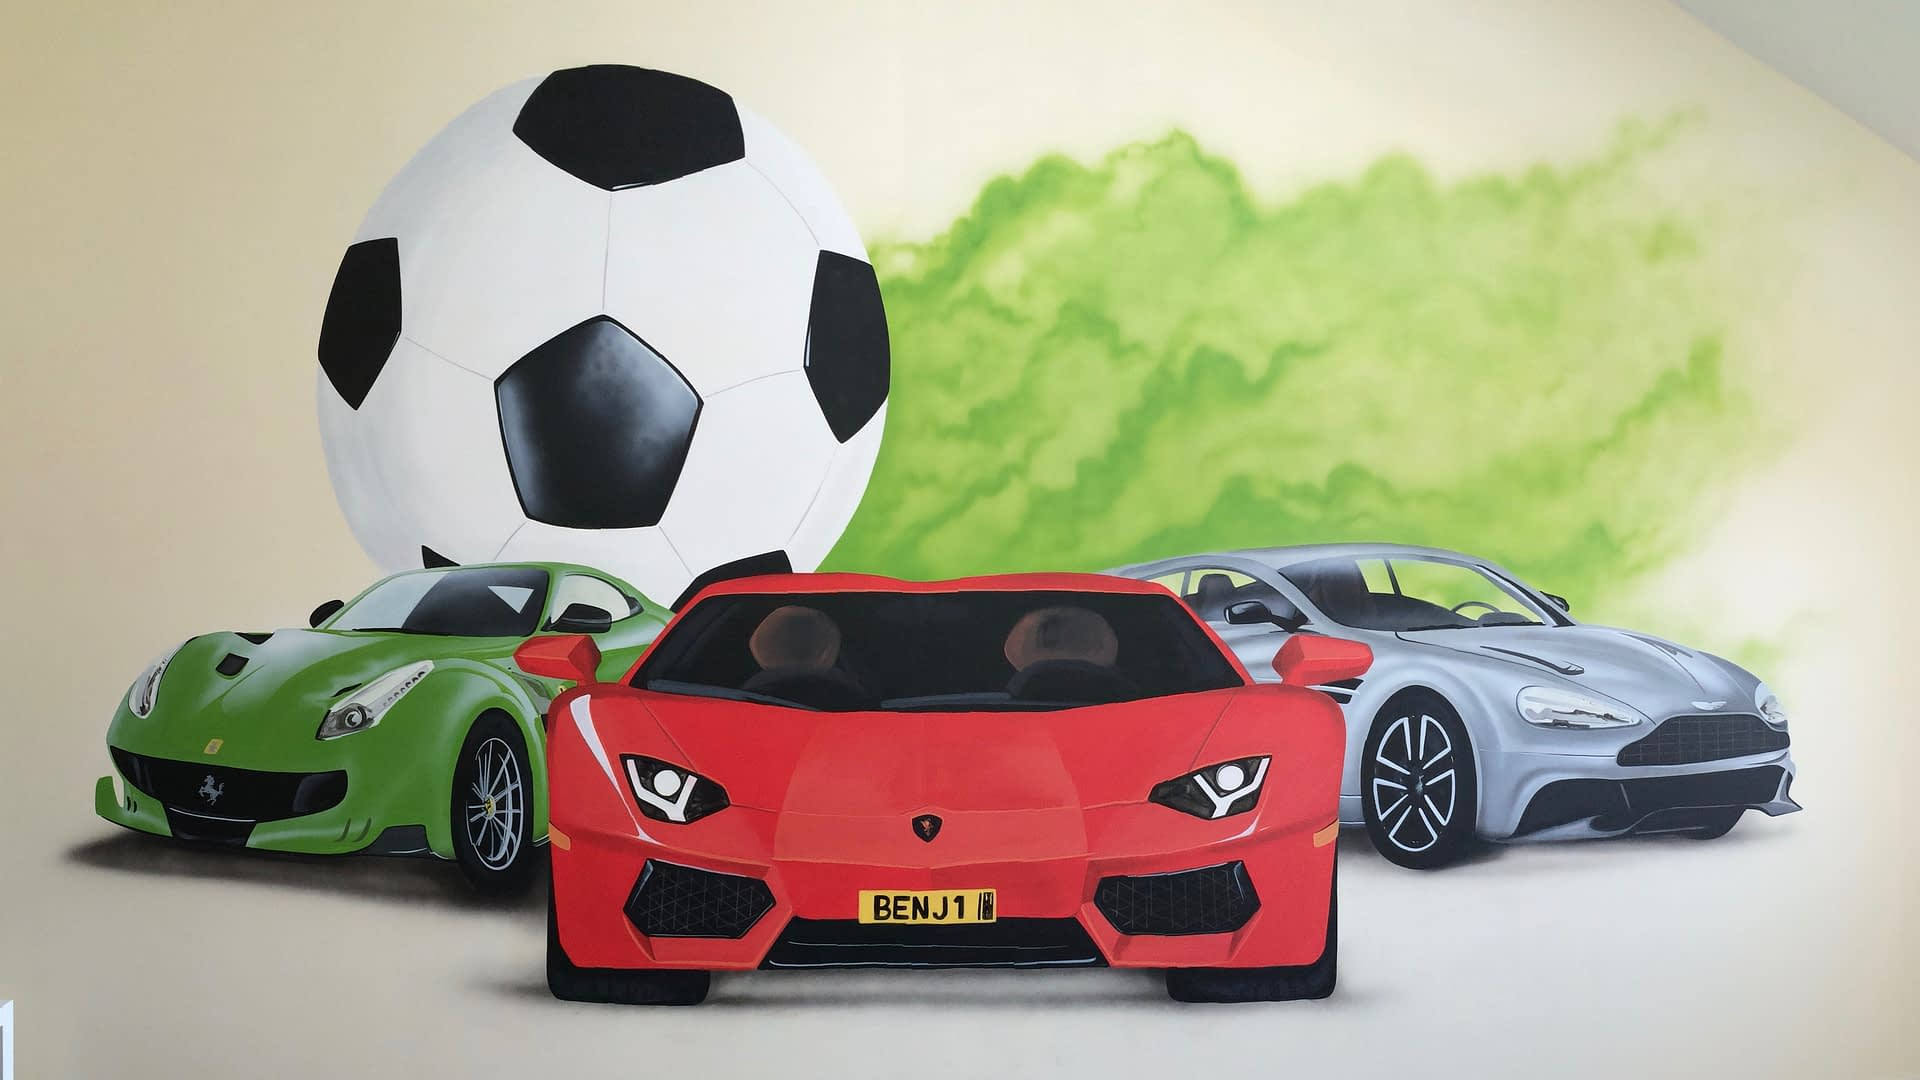 Fast Cars & Football Mural